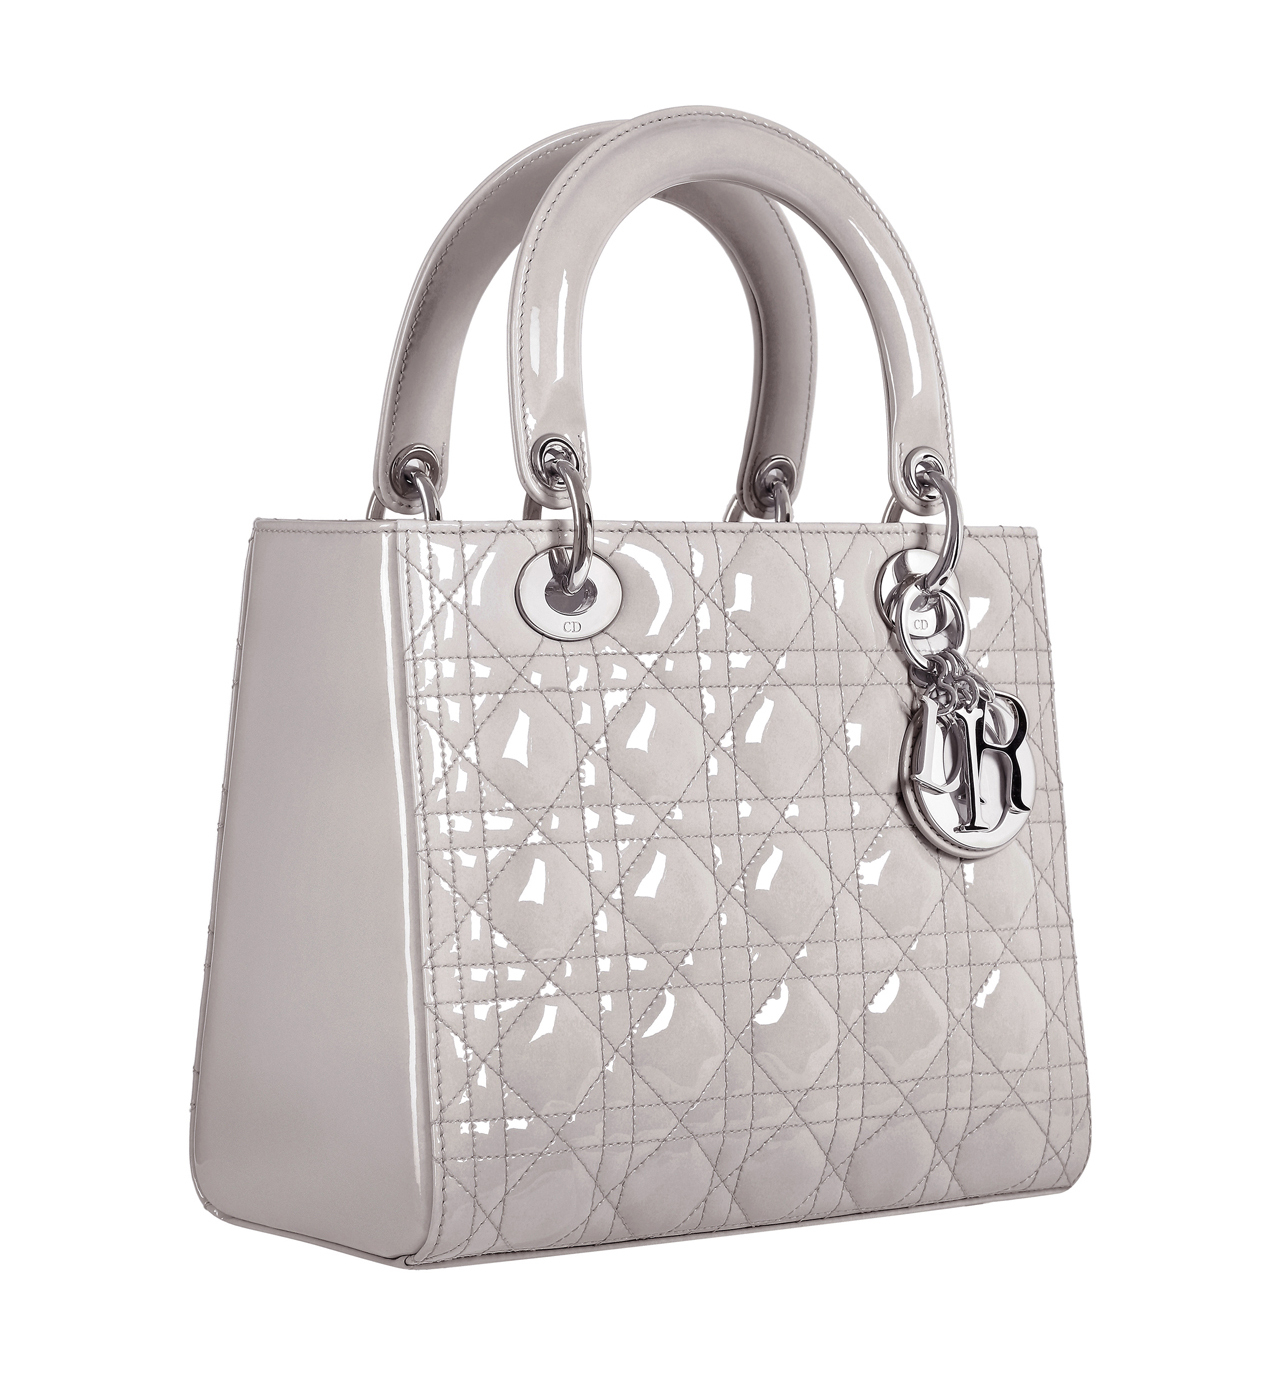 "Christian Dior ""Lady Dior"" bag in pearled grey patent leather ... b089abca4e1de"